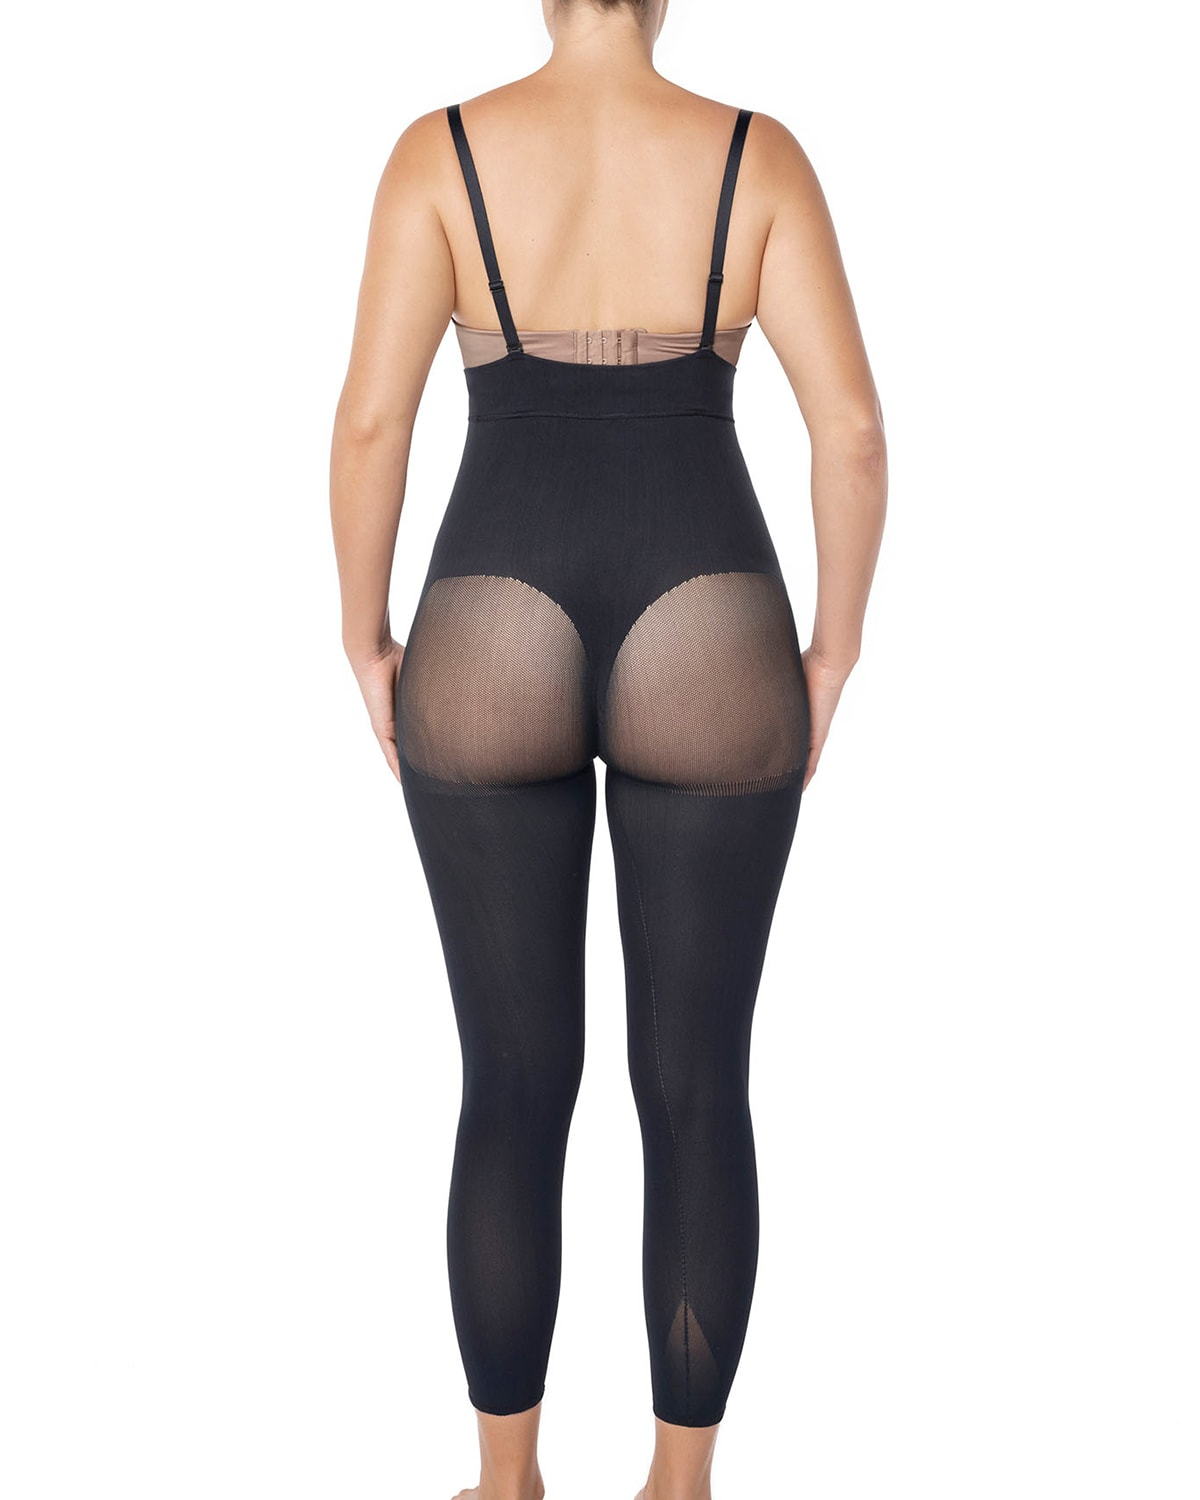 1f4feddaf33 Invisible Body Shaper with Leg Compression and Butt Lifter